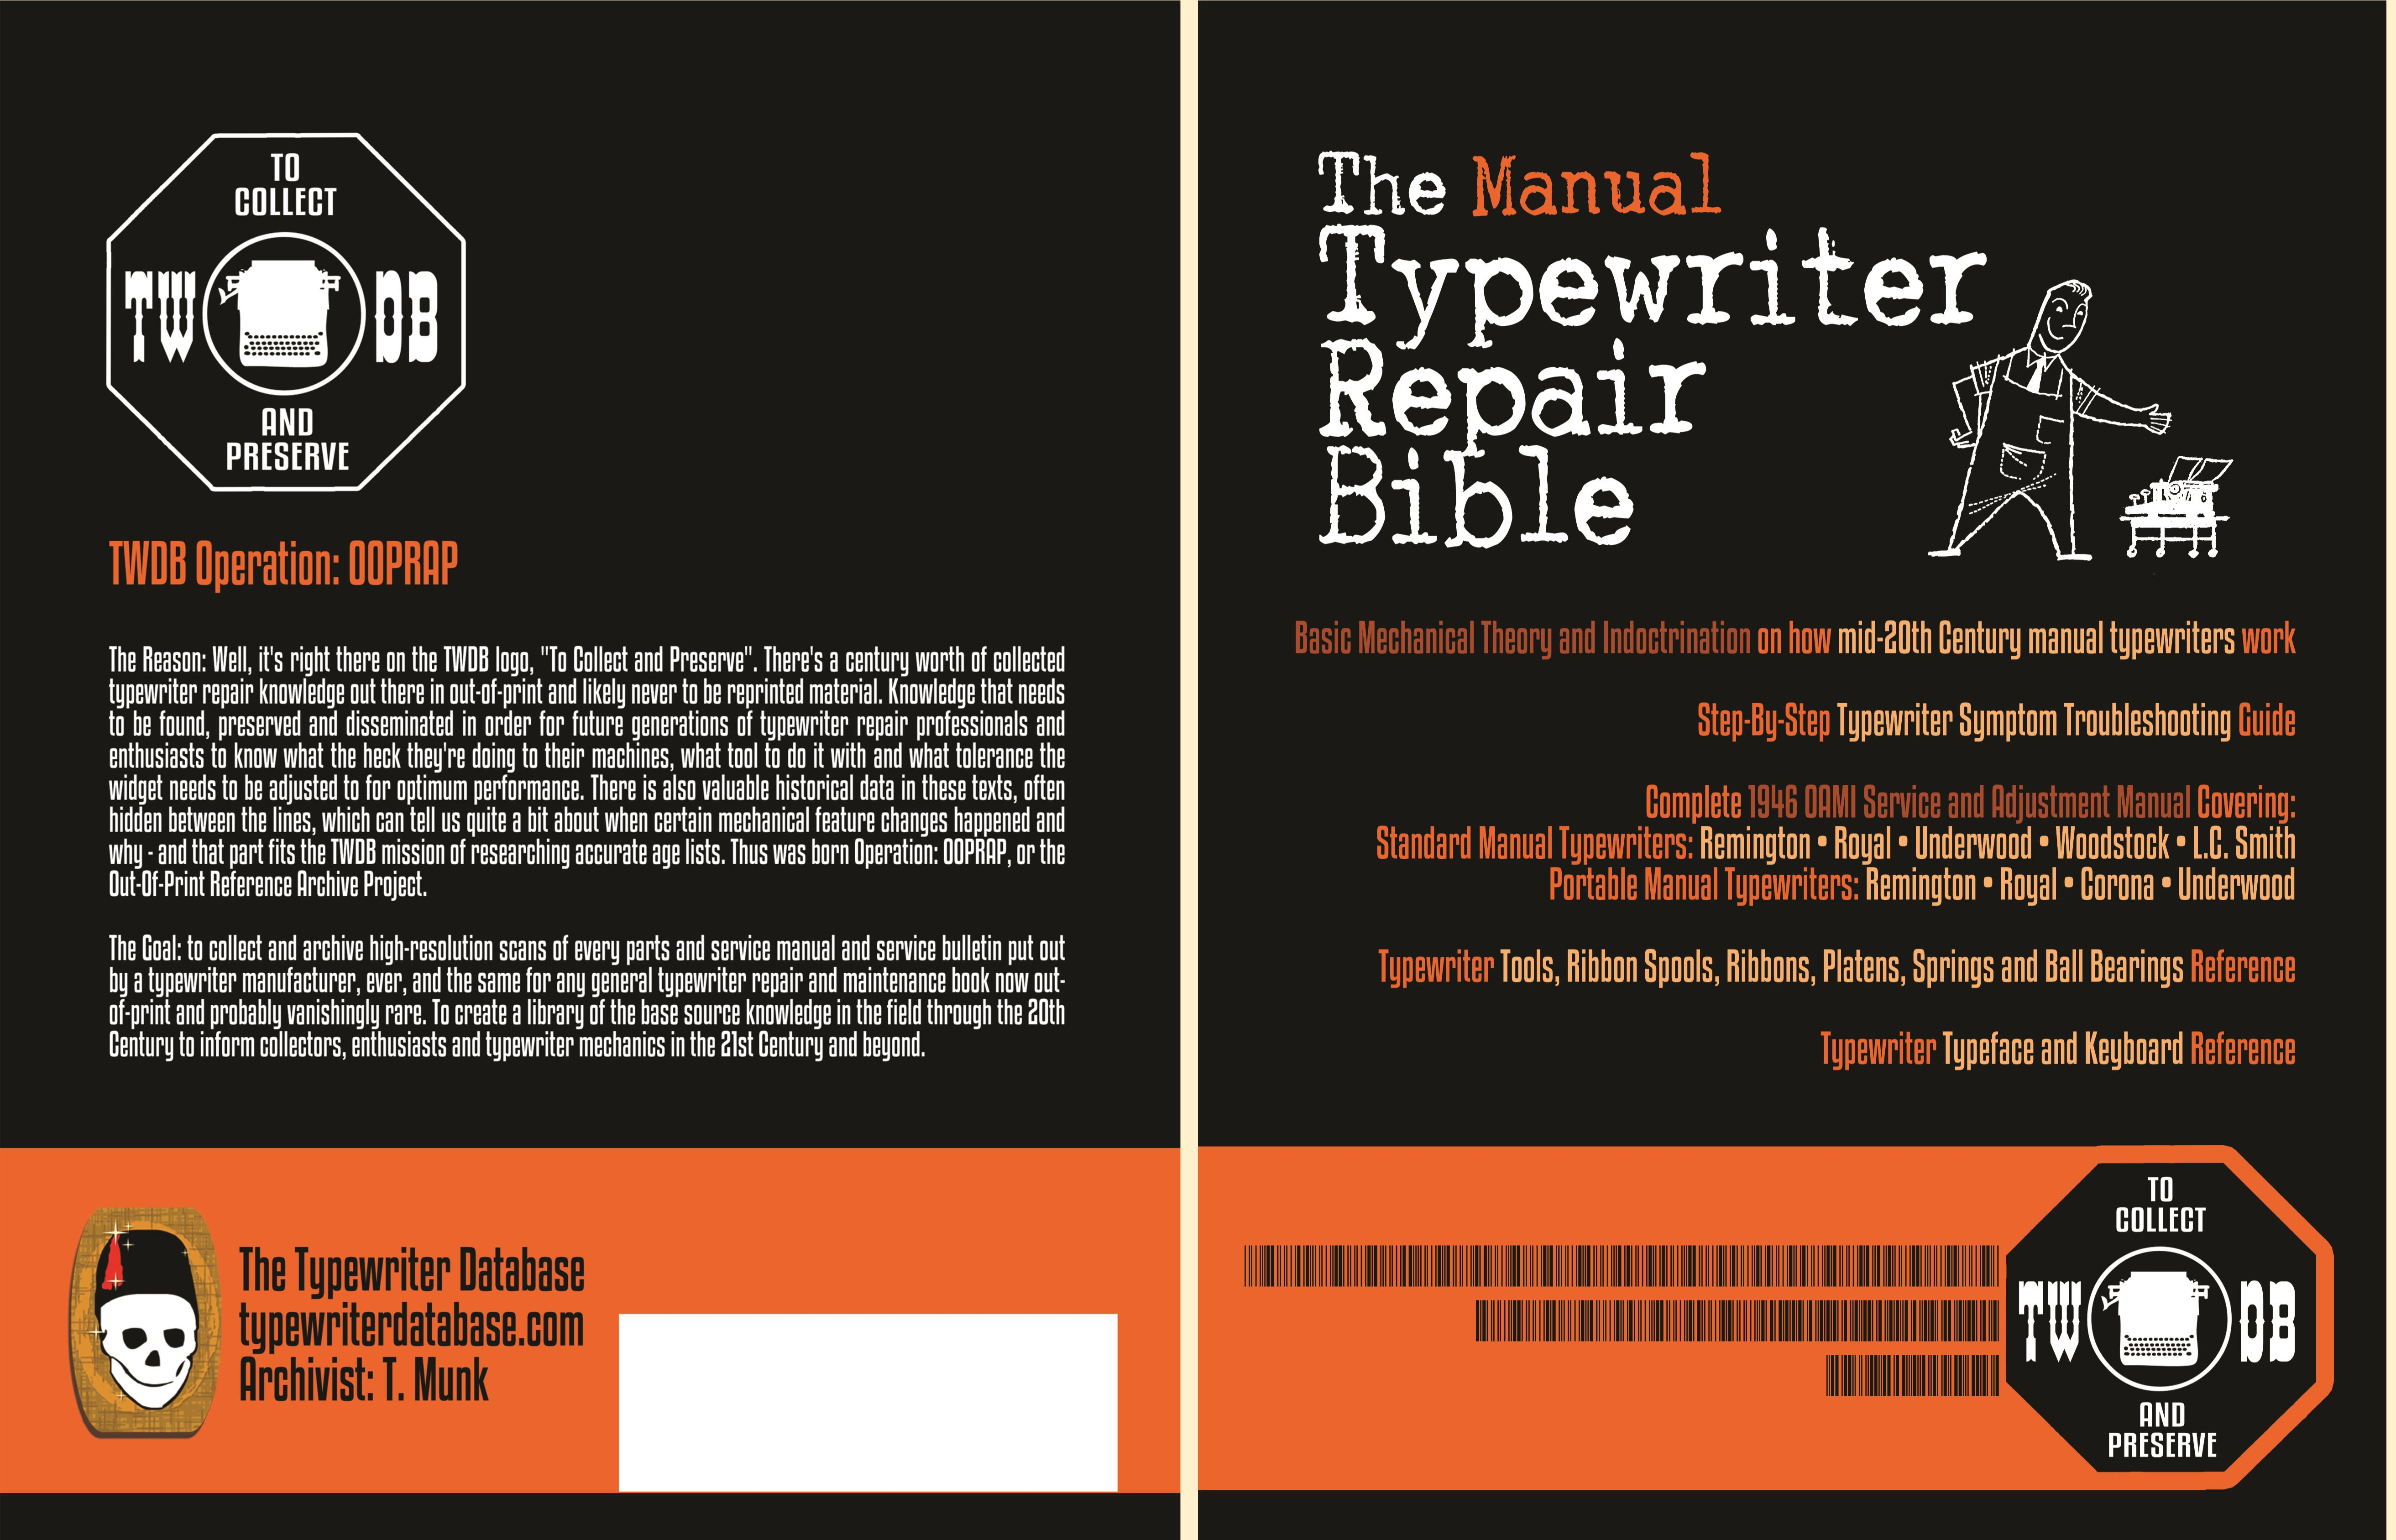 The Manual Typewriter Repair Bible cover image